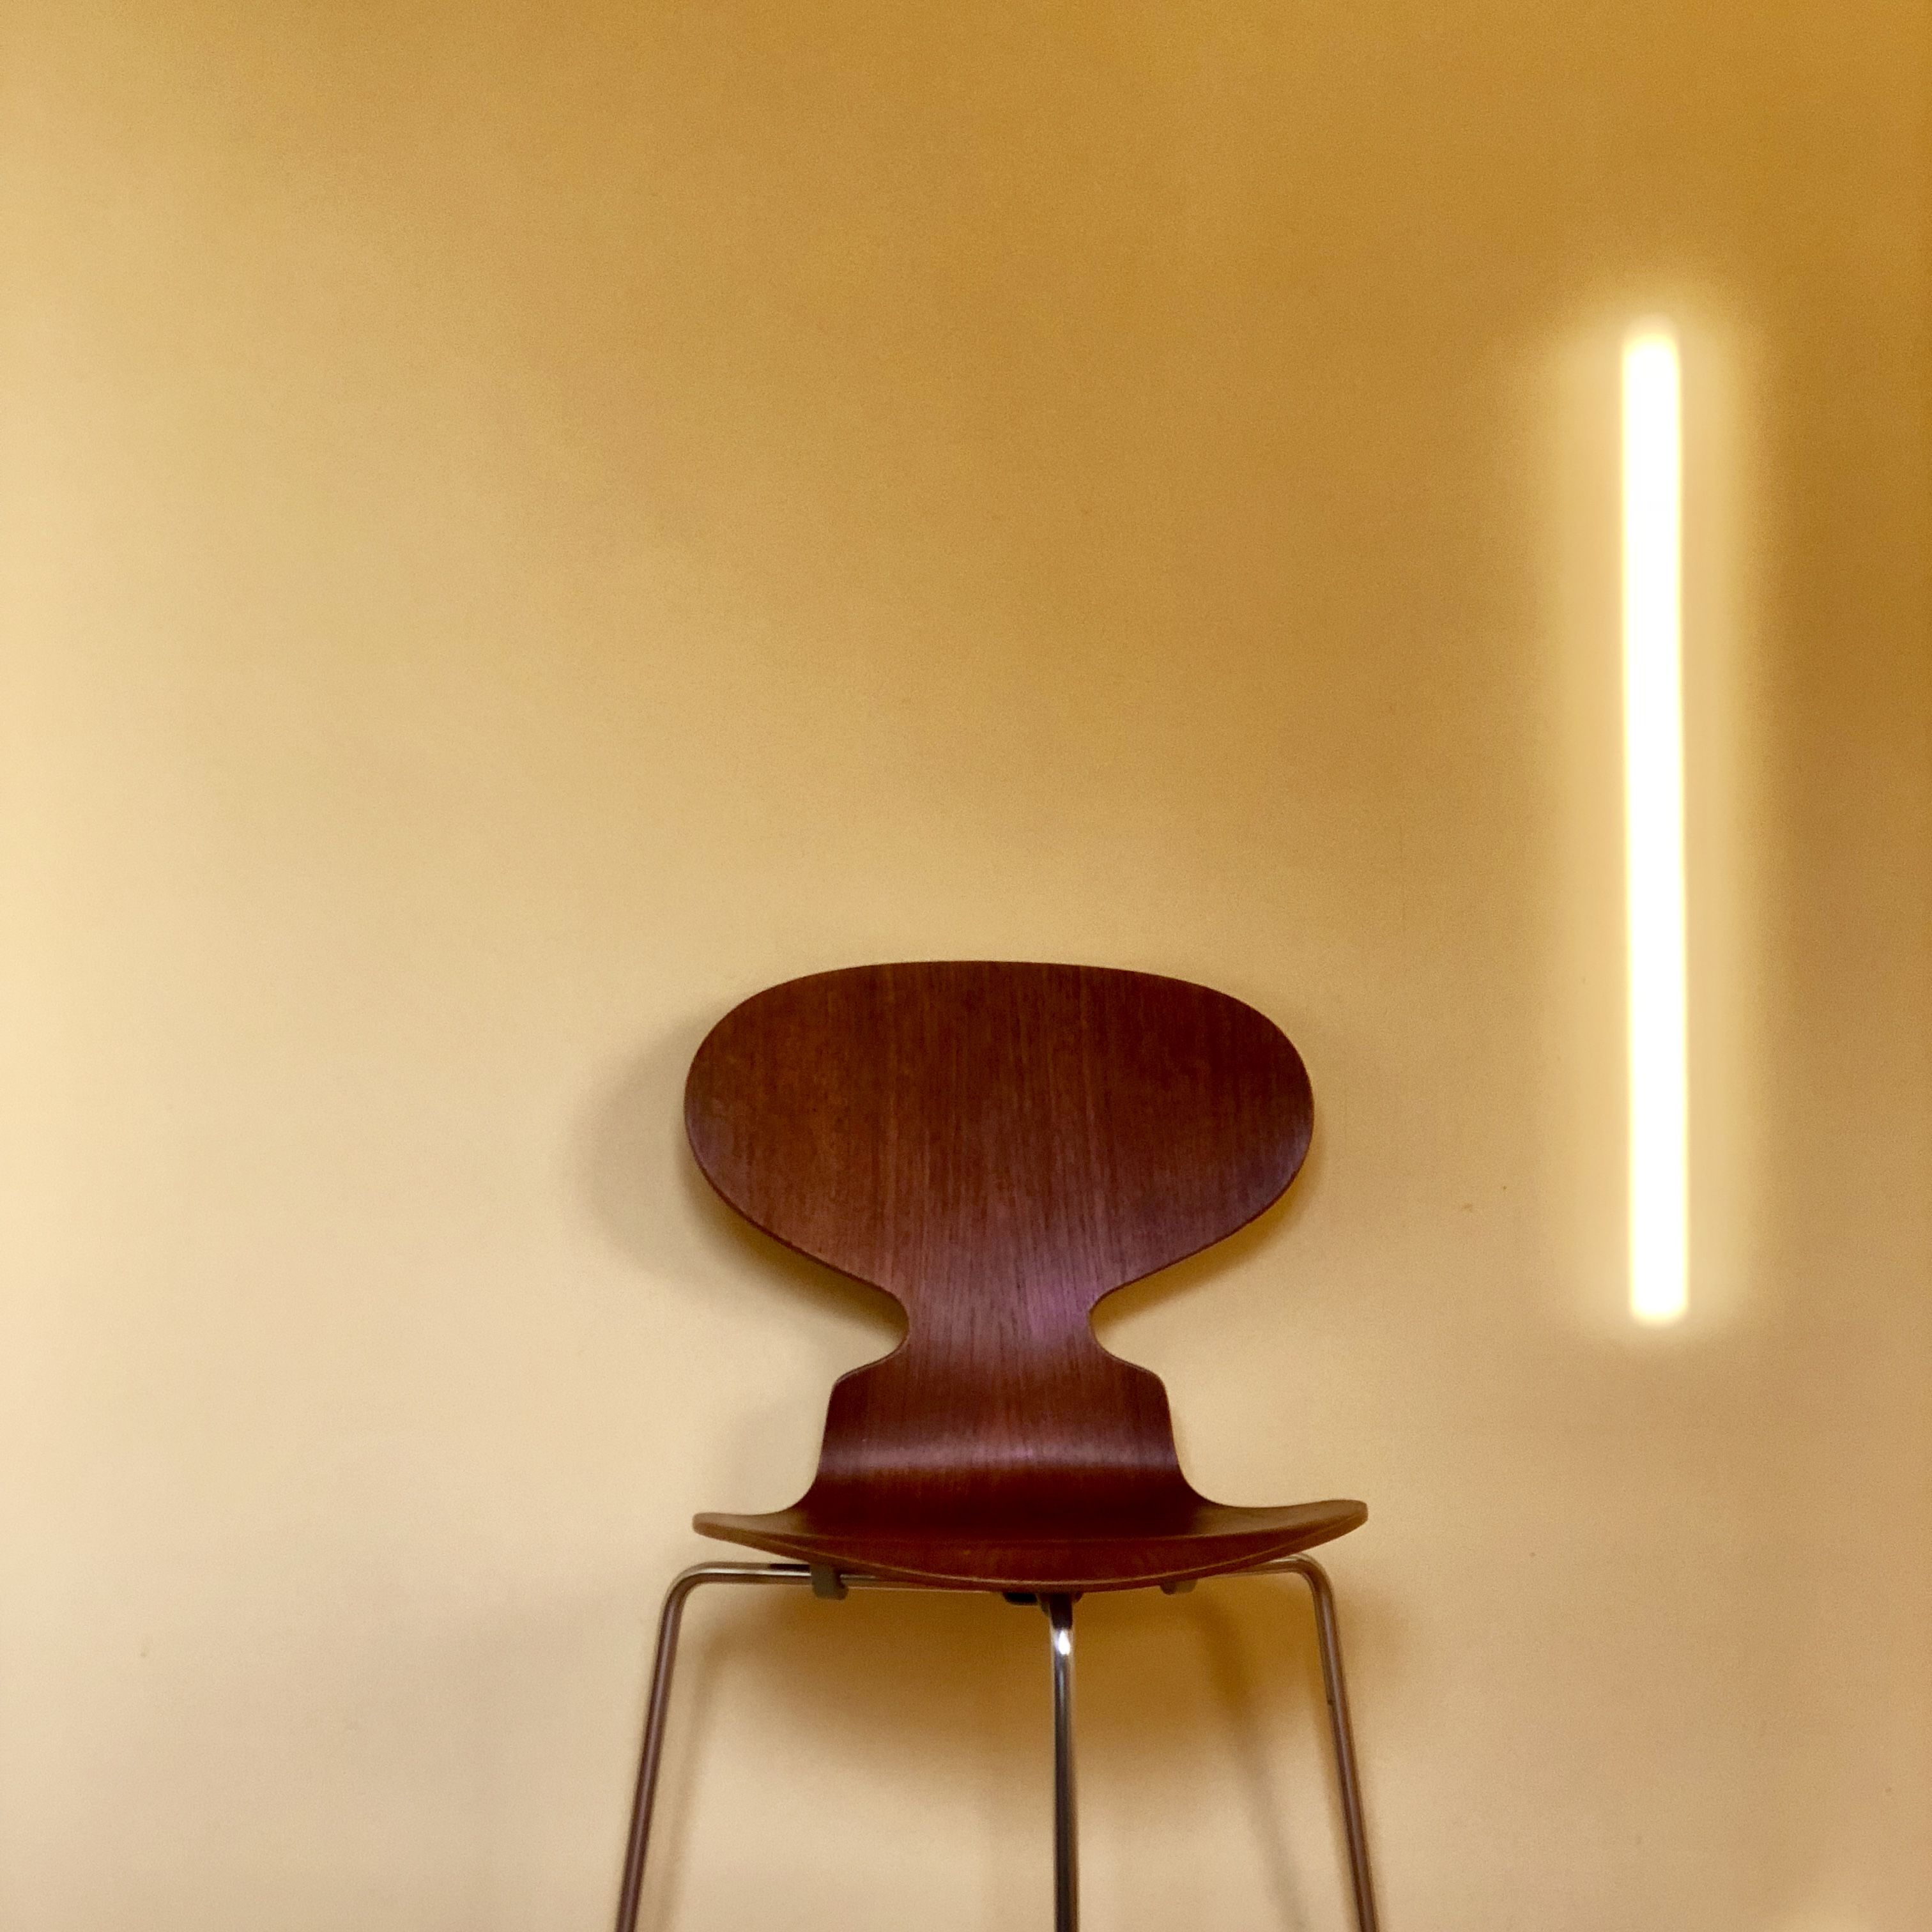 Early Ant Chair Made Of Teak With Three Legs Designed By Arne Jacobsen Stuhle Skandinavisches Design Design